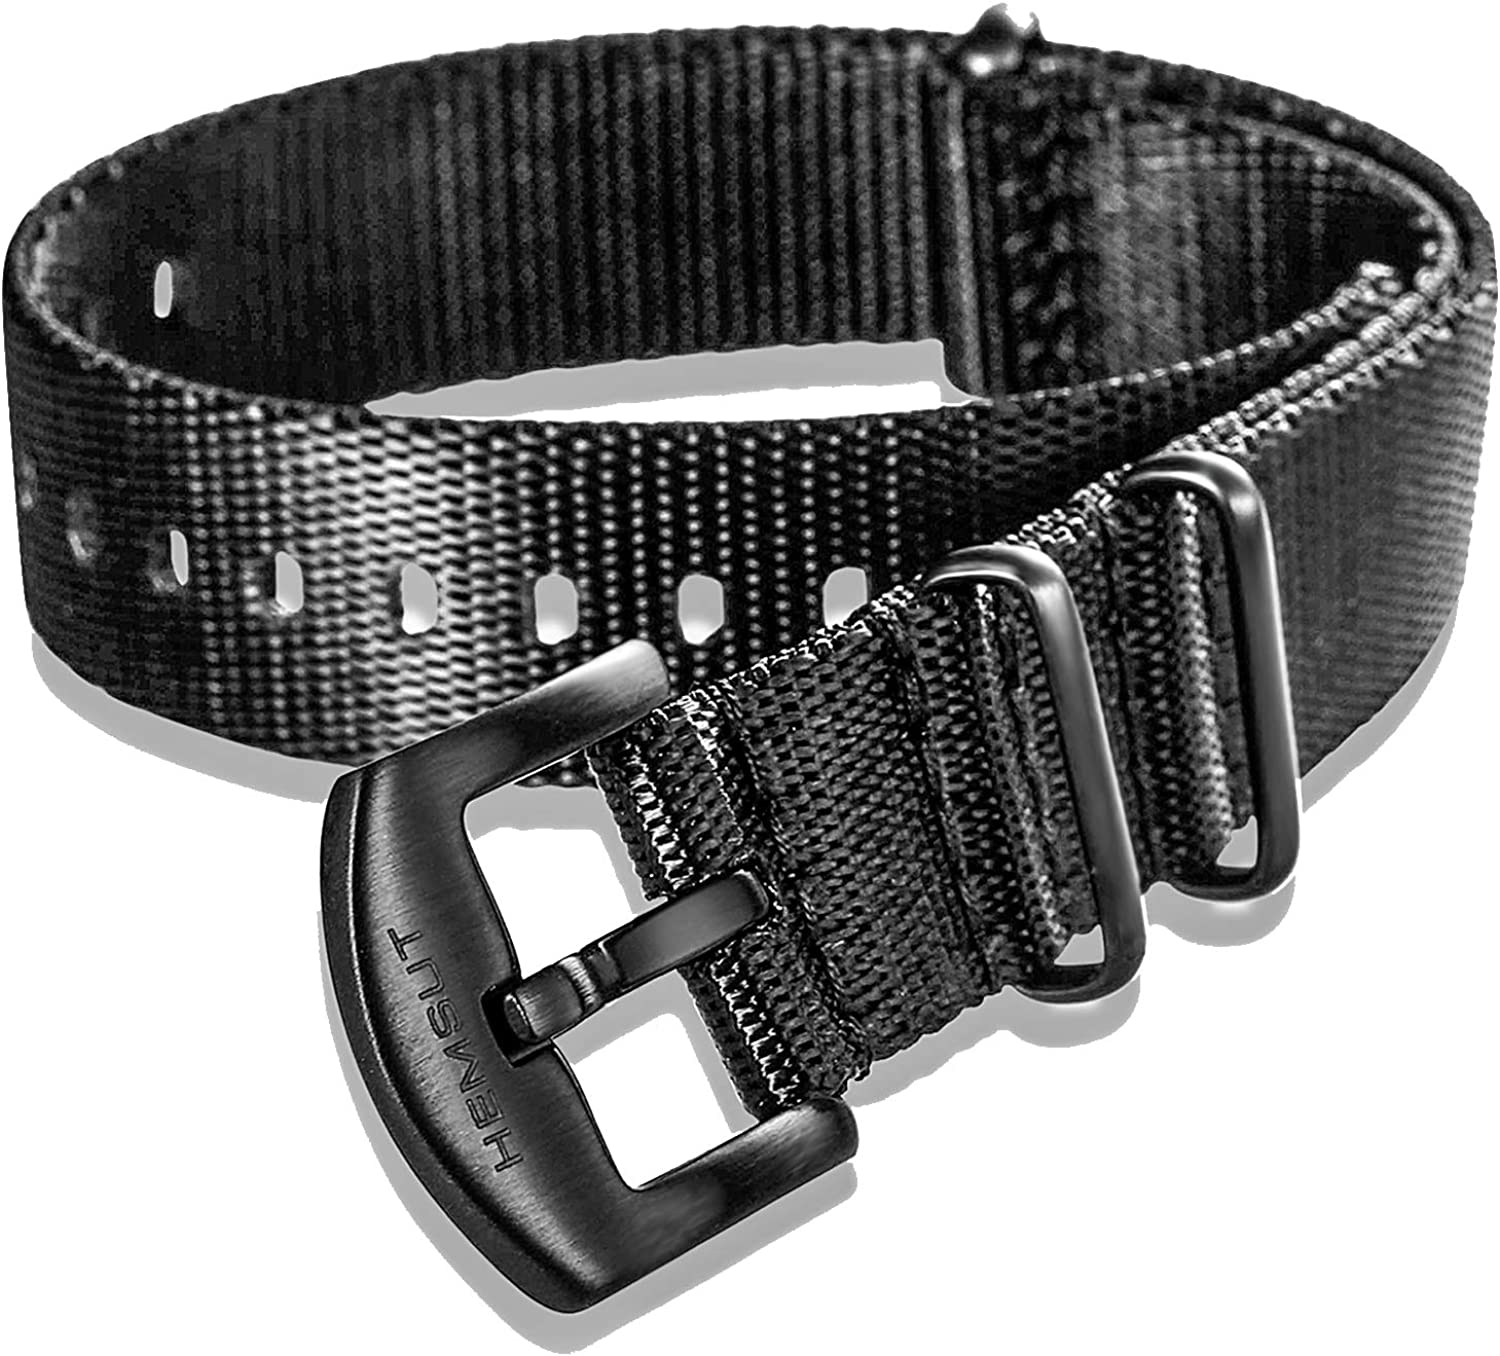 Hemsut Military Style Watch Strap for Men Max 82% OFF Wrap Seat Belt All stores are sold